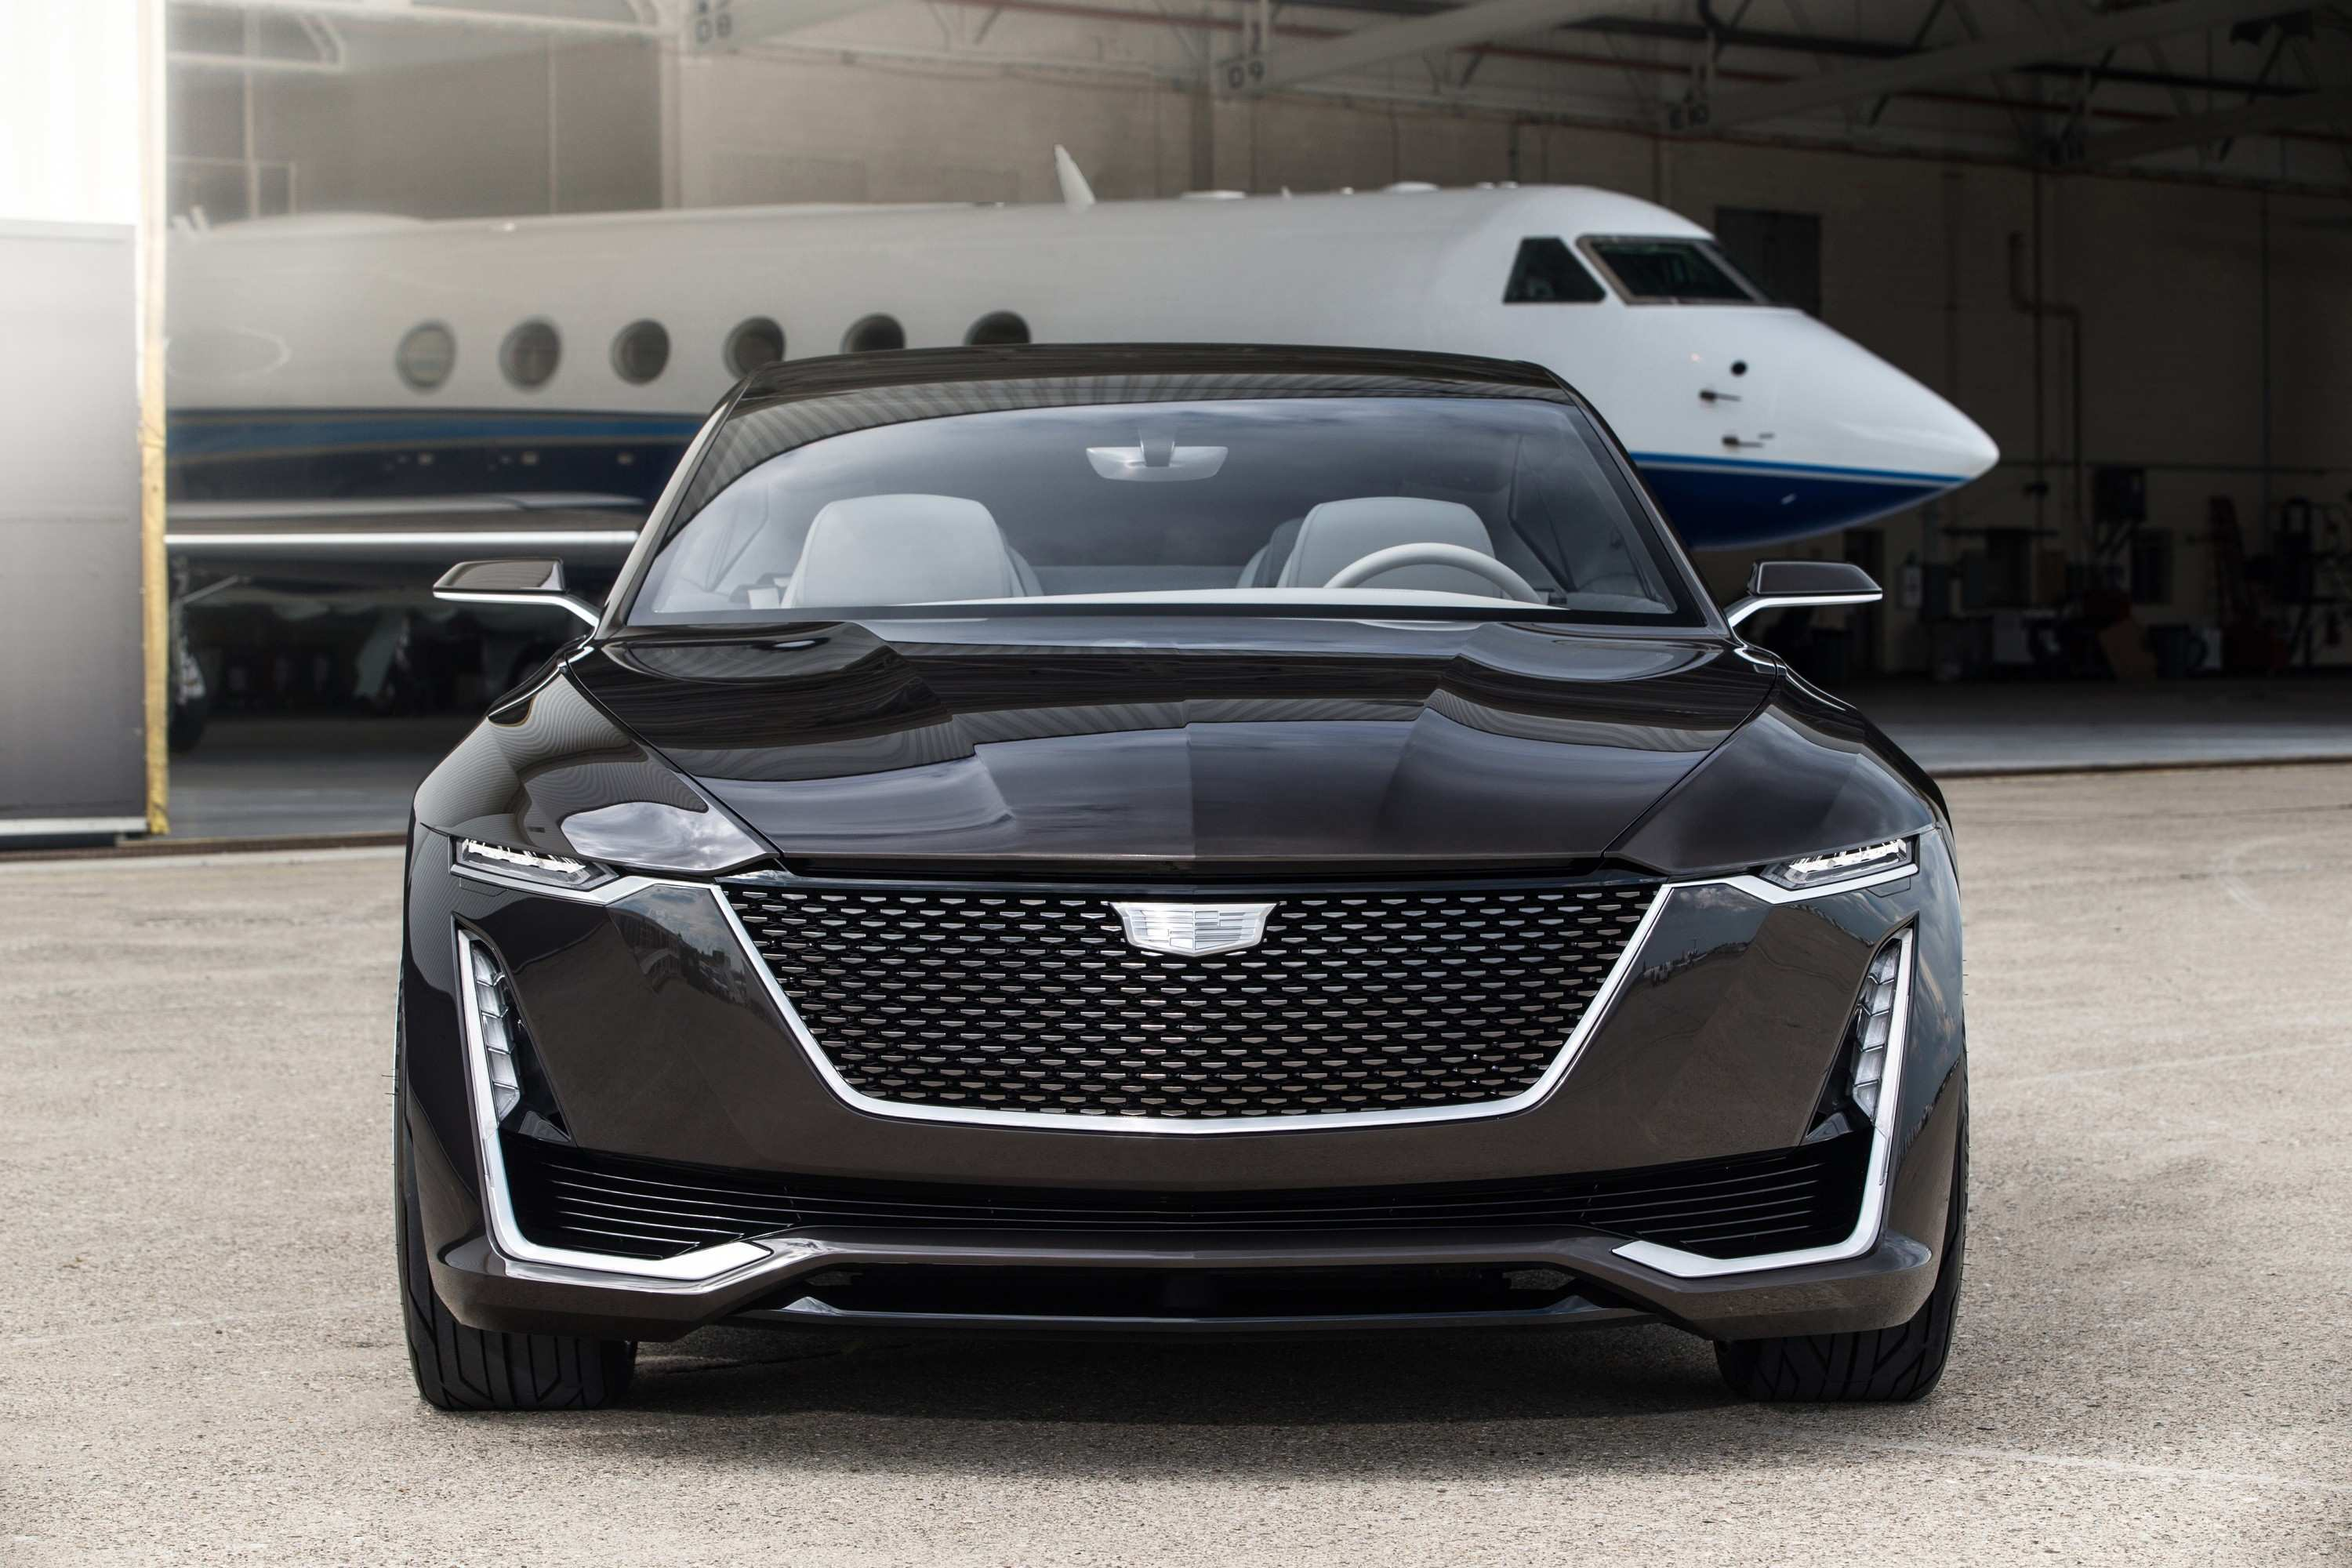 21 New 2020 Cadillac Hearse Specs And Review